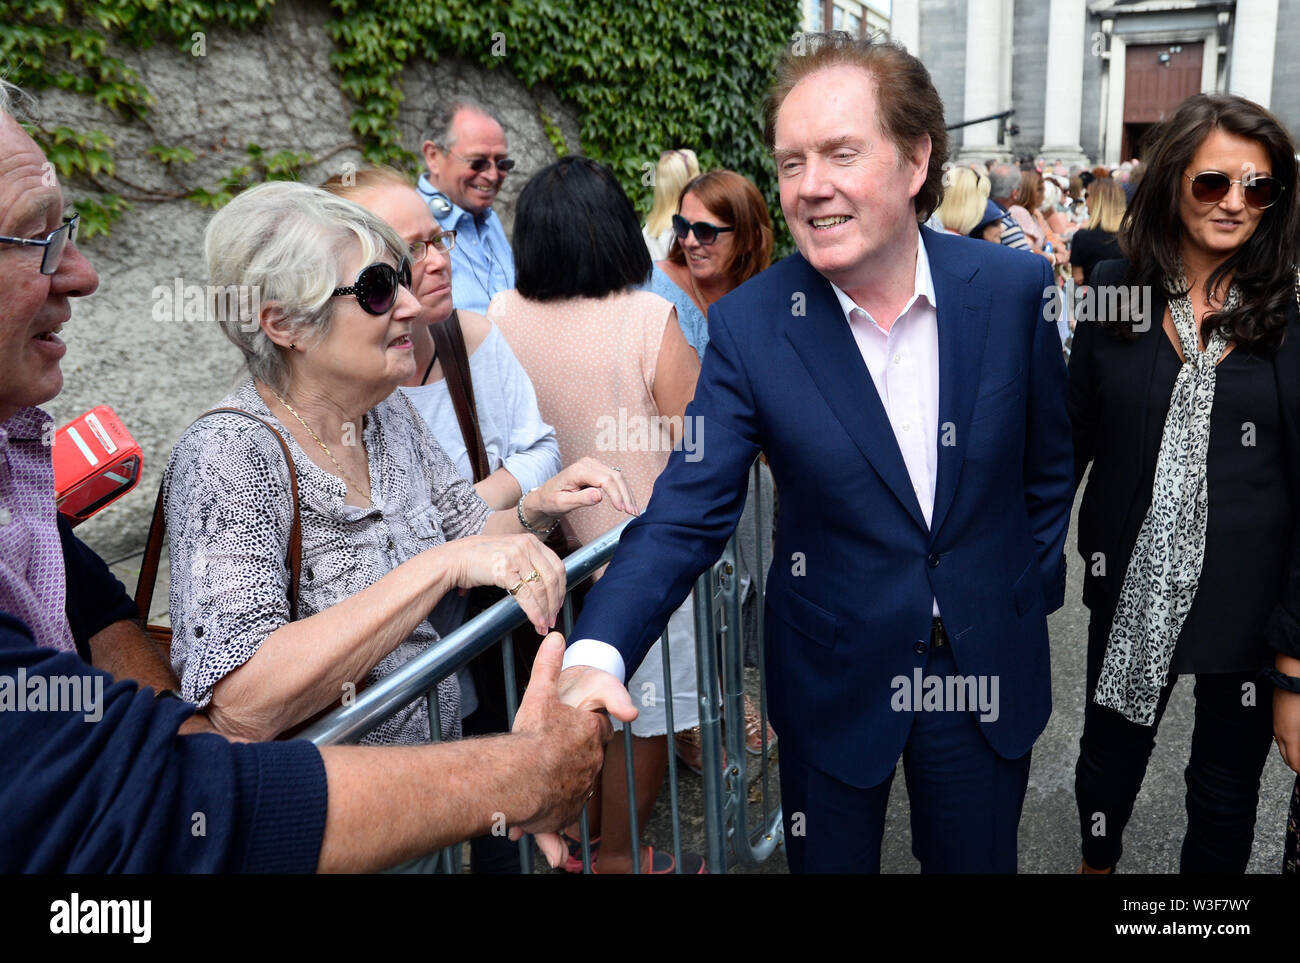 Entertainer and friend Red Hurley arrives for the funeral of Father Ted star Brendan Grace at the Church of St. Nicholas of Myra, Dublin. - Stock Image